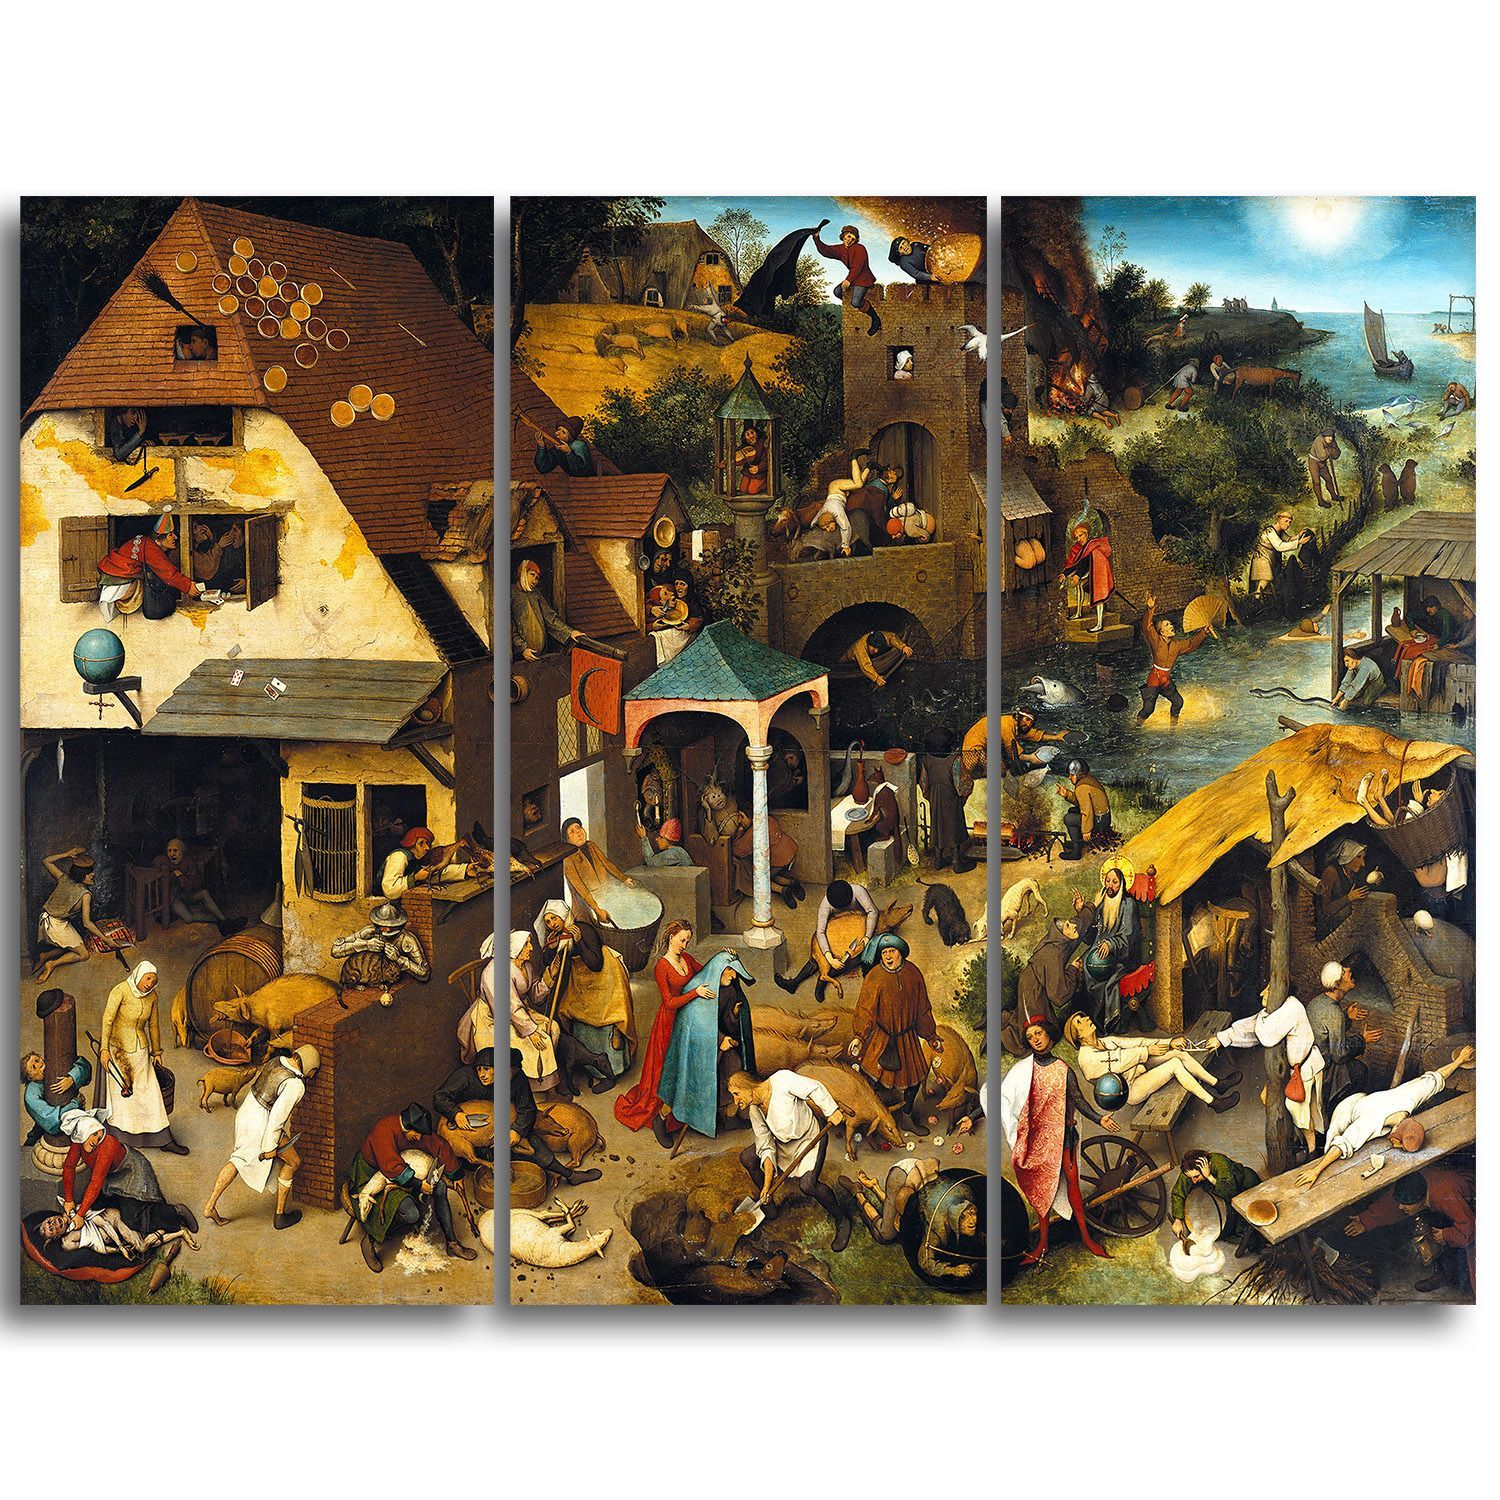 Hieronymus Bosch Pieter Bruegel Elder Paintings 1559 Canvas Art Print